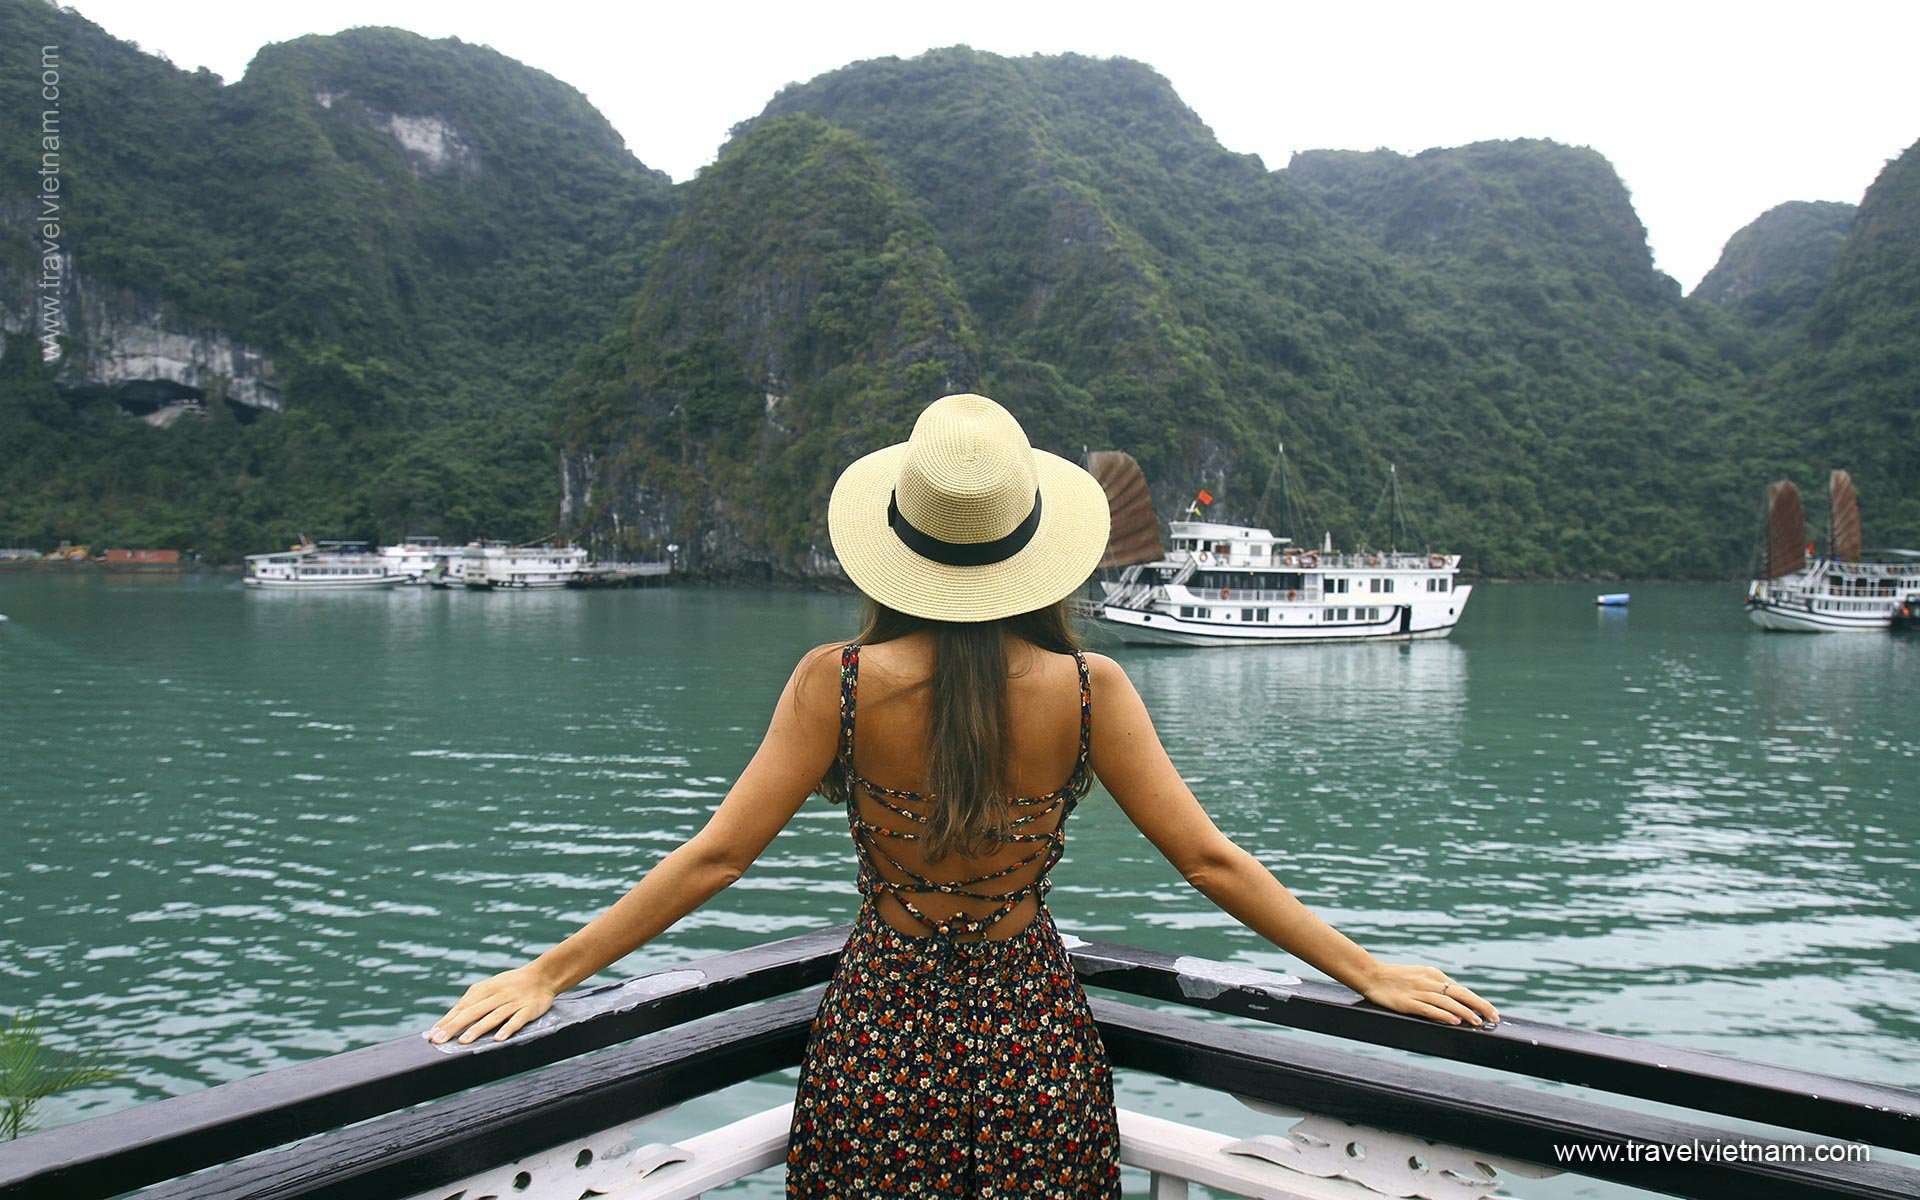 River Floating Market - Beach Break & Leisure Cruise - 10 Days